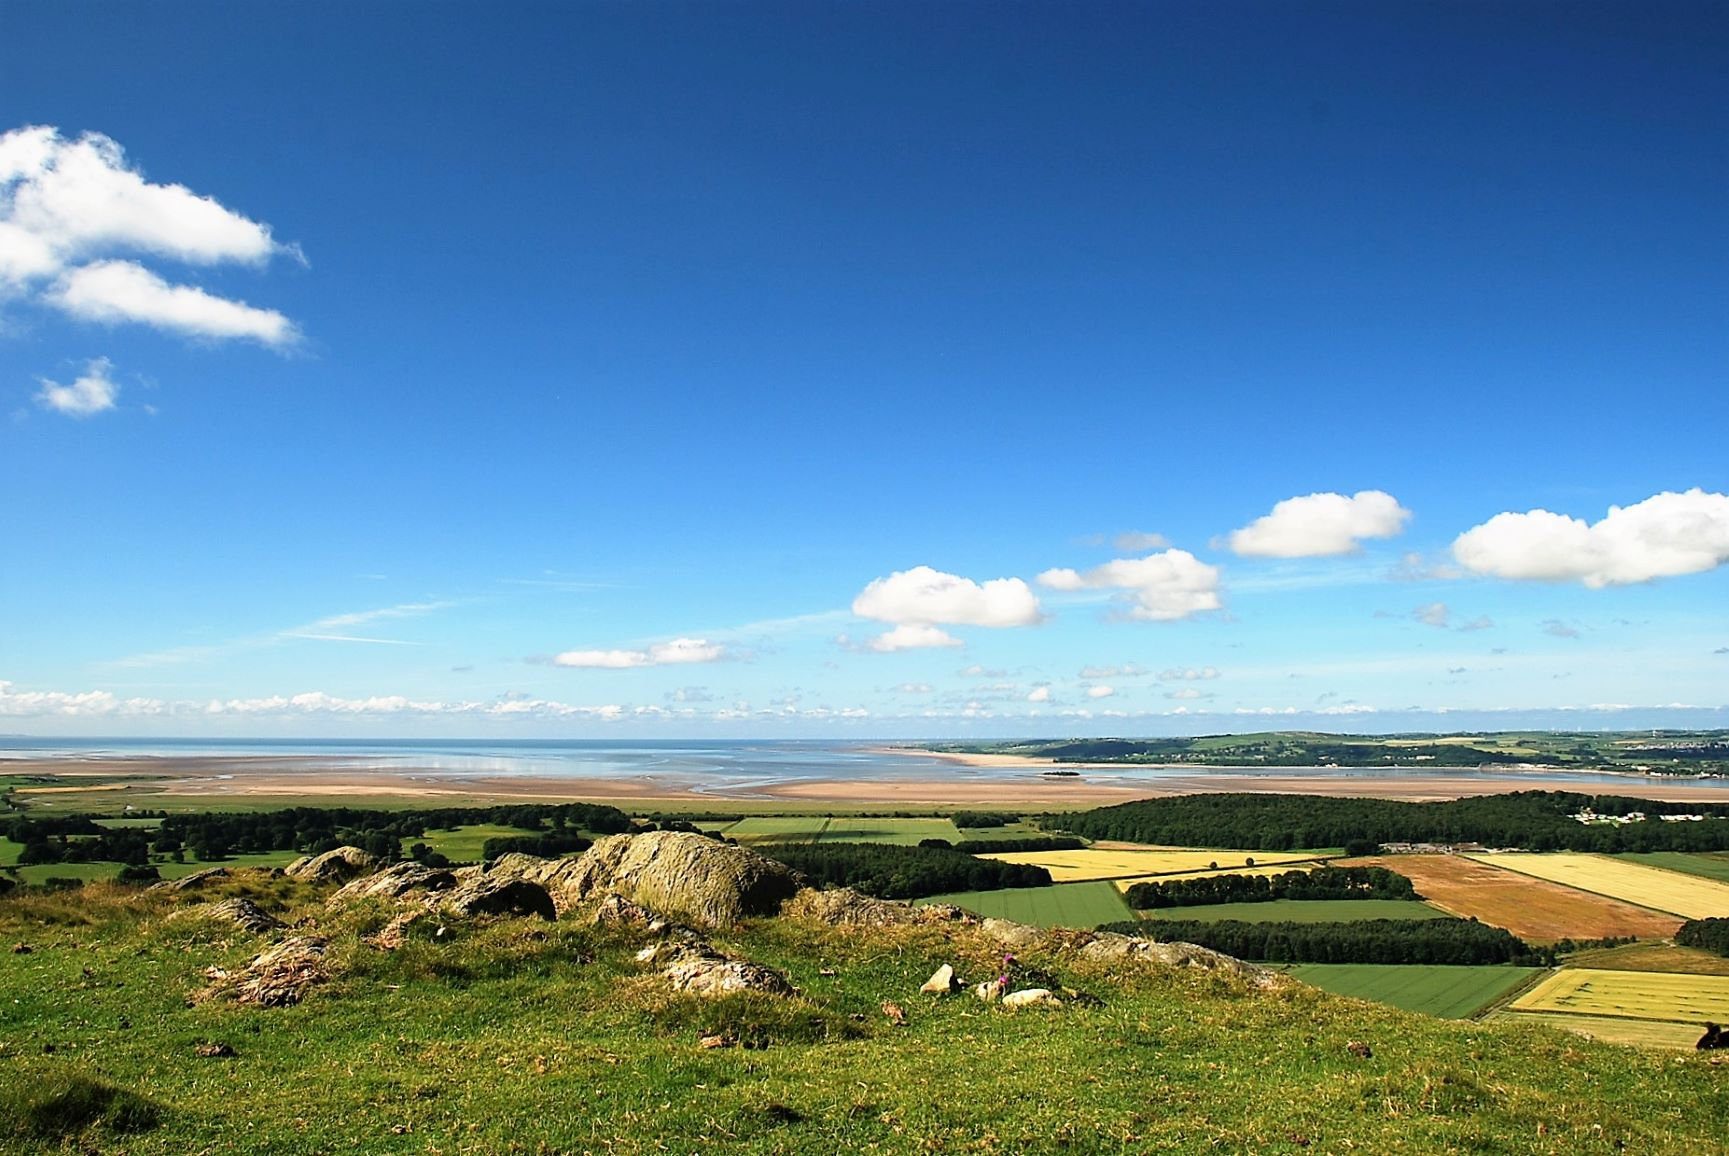 View of Morecambe Bay from Hampsfell in the Cartmel Valley